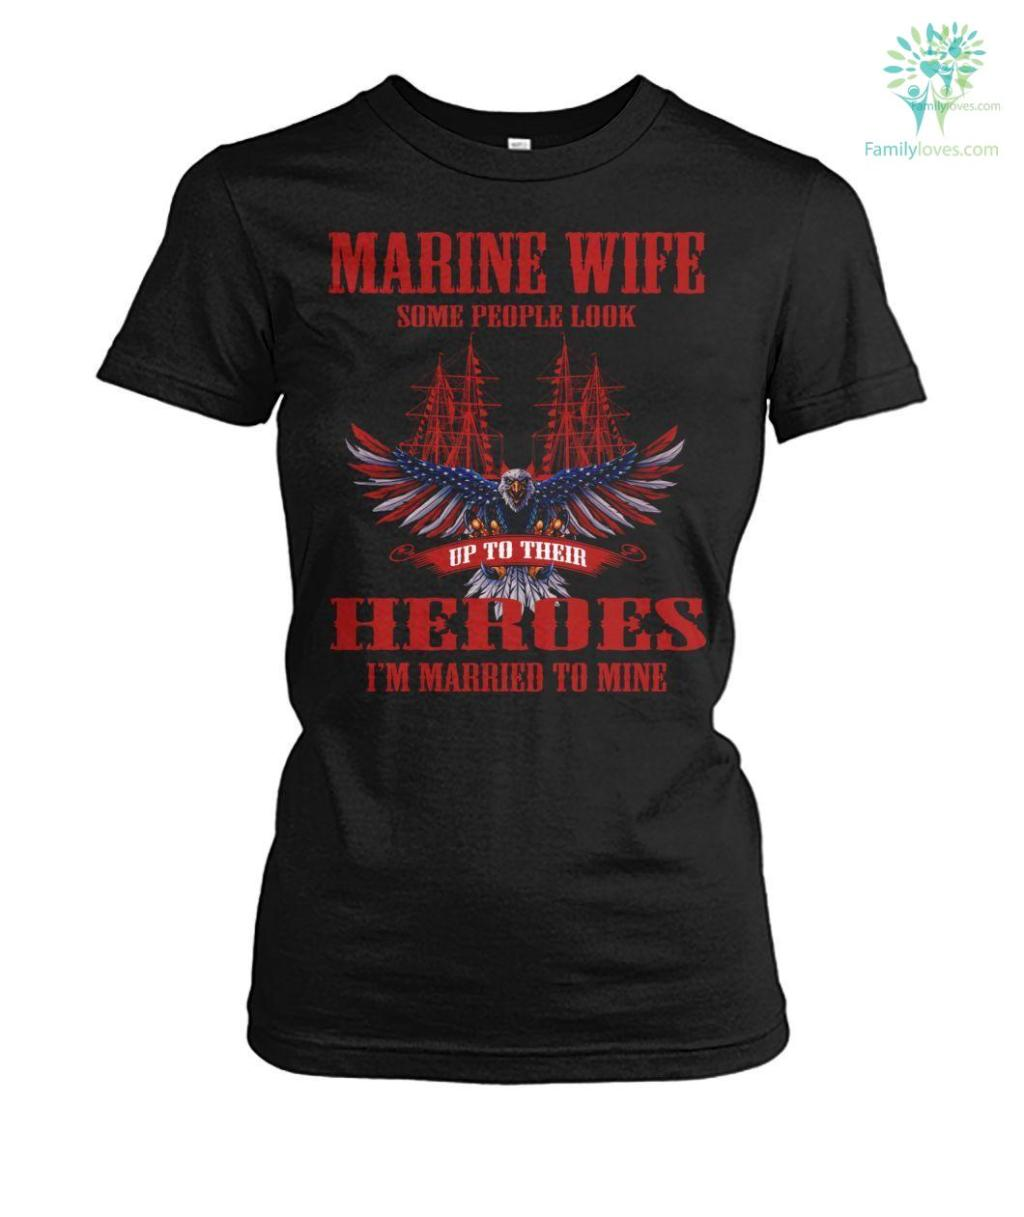 marine wife some people look up to their heroes i'm married to mine Hoodies/Tshirt Familyloves.com